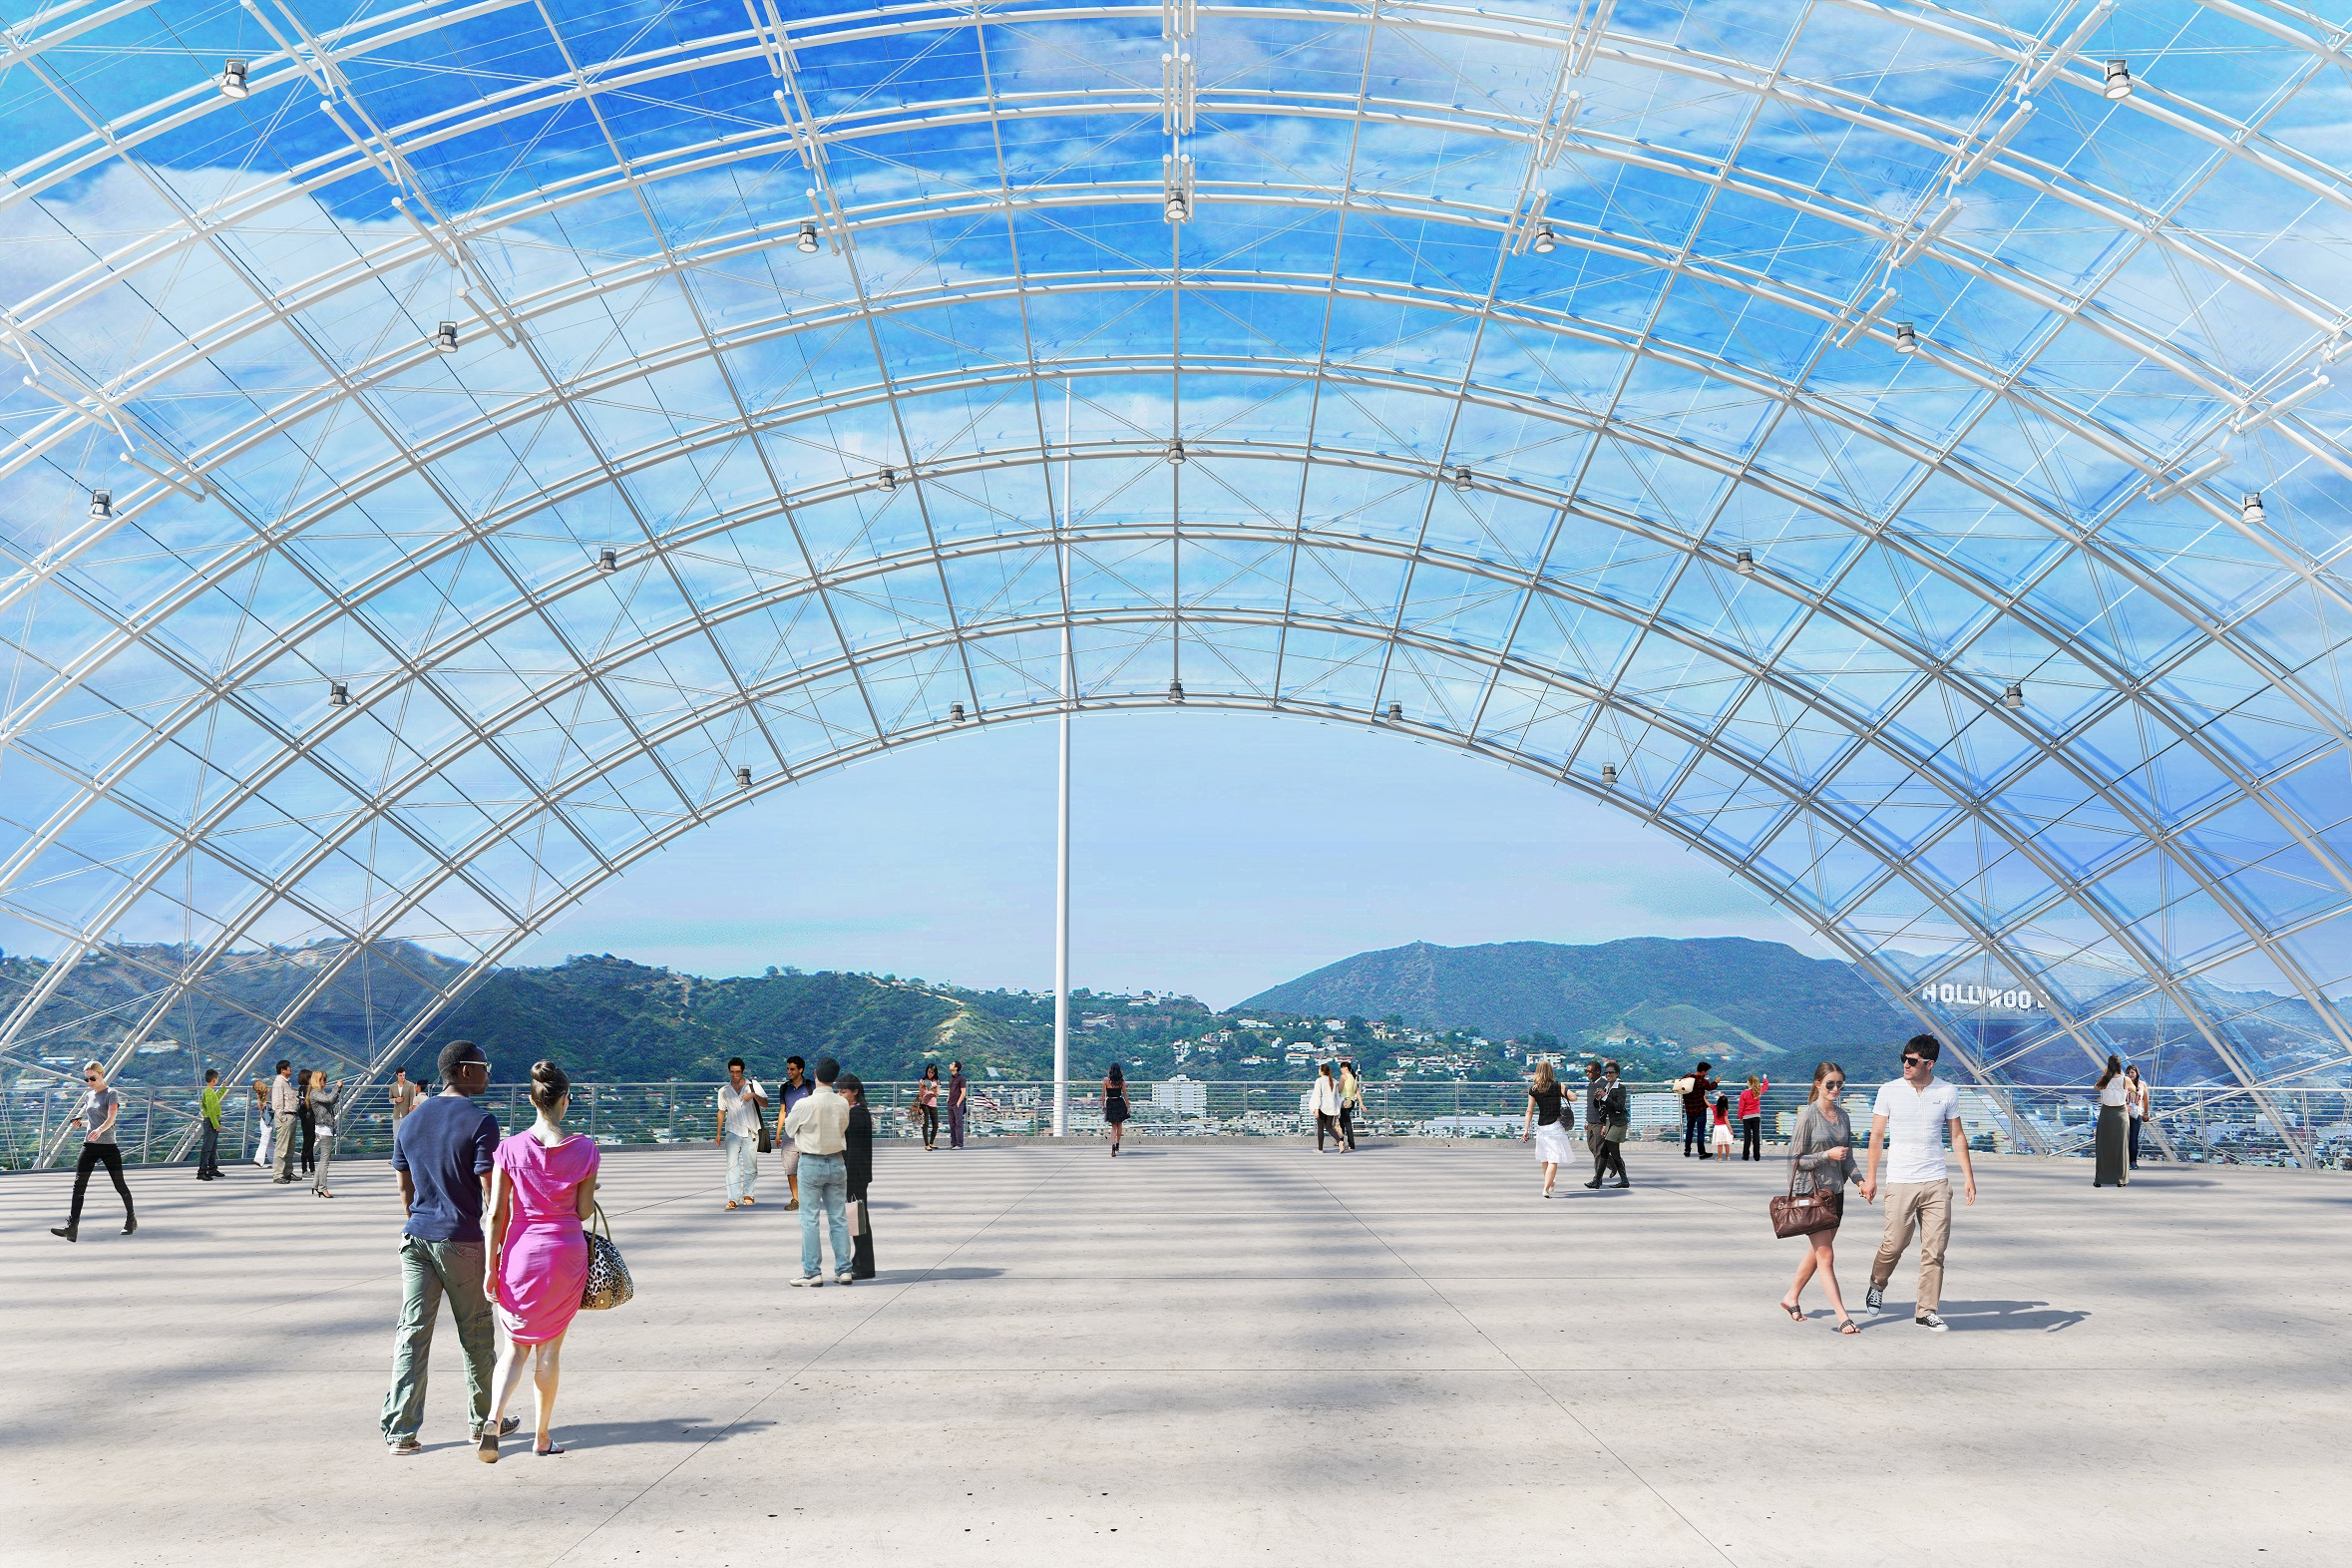 An artist's rendering of the dome at the Academy Museum of Motion Pictures. The complex will include a 1,000-seat theater and a dome with the view of the Hollywood Hills.